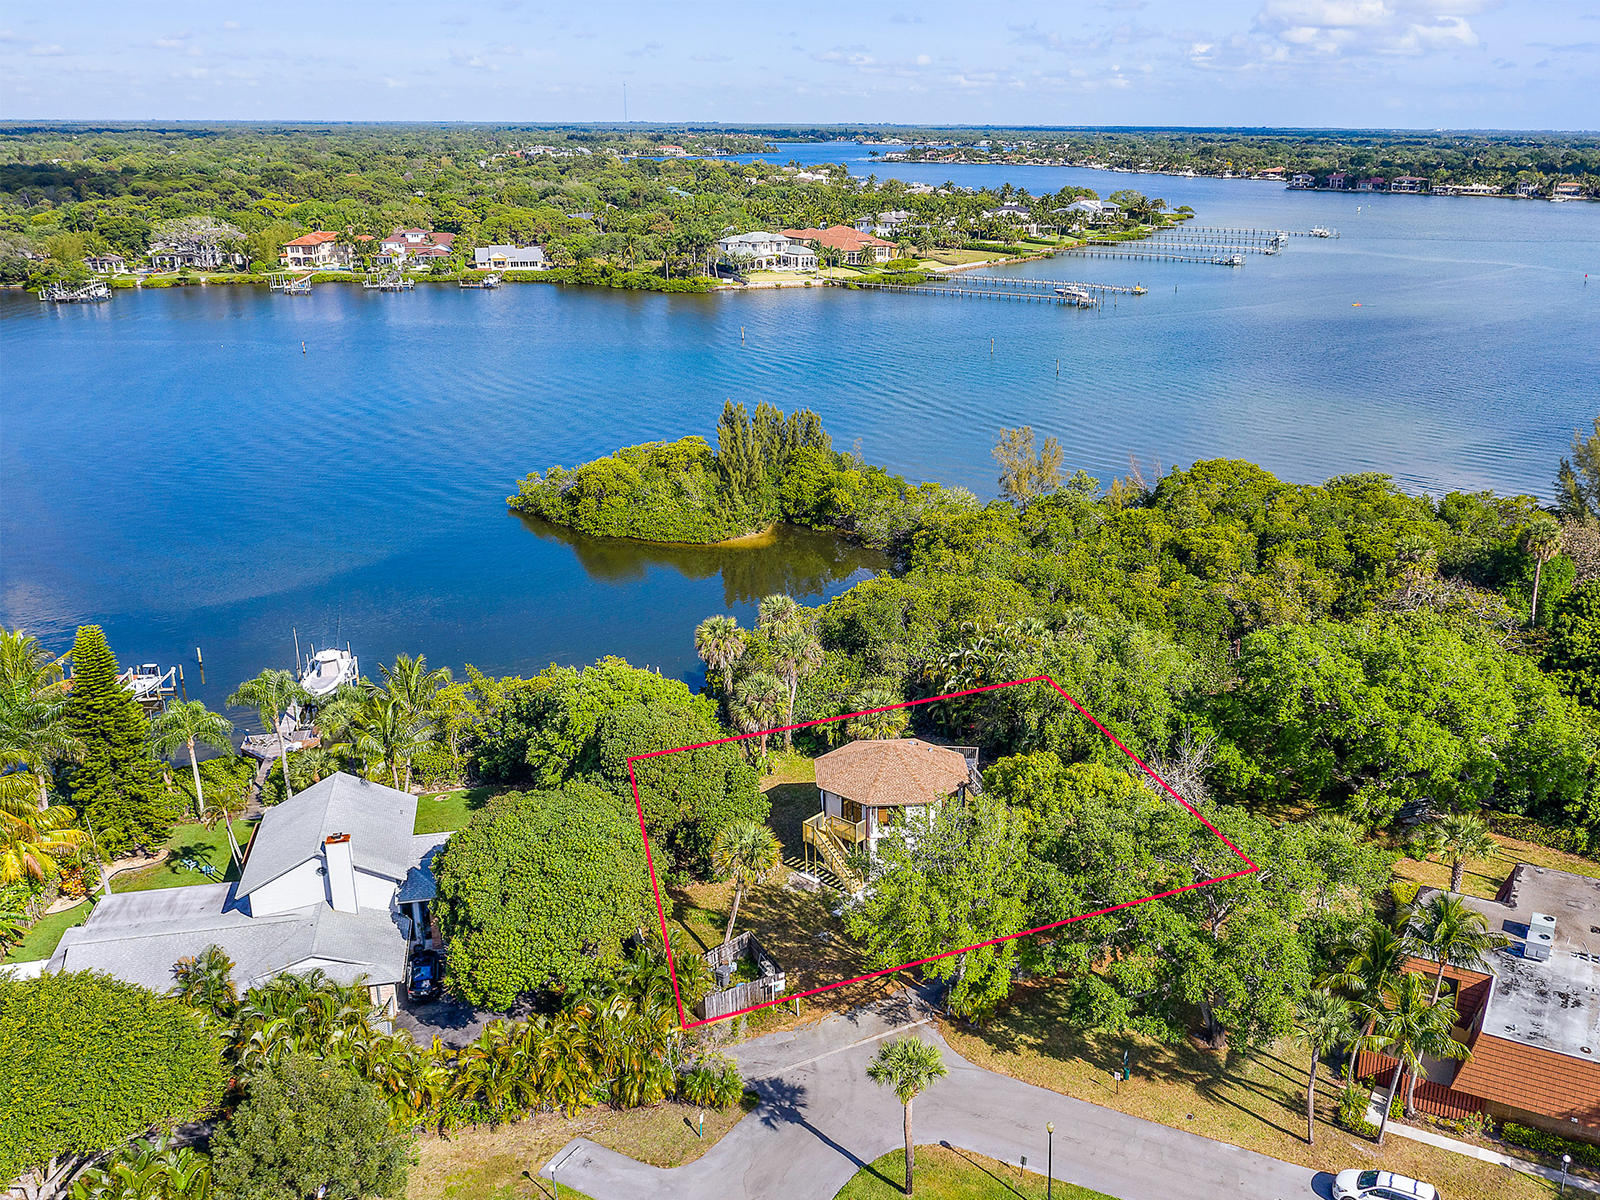 Rarely available waterfront lot on the Loxahatchee River with breathtaking sunset views, wide water views, and secluded cove. Launch your boat, kayak, or wave runner from 100 feet of waterfront with ocean access. Plenty of room to build your dream home. Minutes to the turquoise Atlantic Ocean and inlet for a day of deep water fishing or just a day of relaxation and fun. Conveniently located to I-95, the turnpike, great restaurants, shopping, golf, the Jupiter Inlet, and pristine beaches. Remodel the existing home or build your dream home.